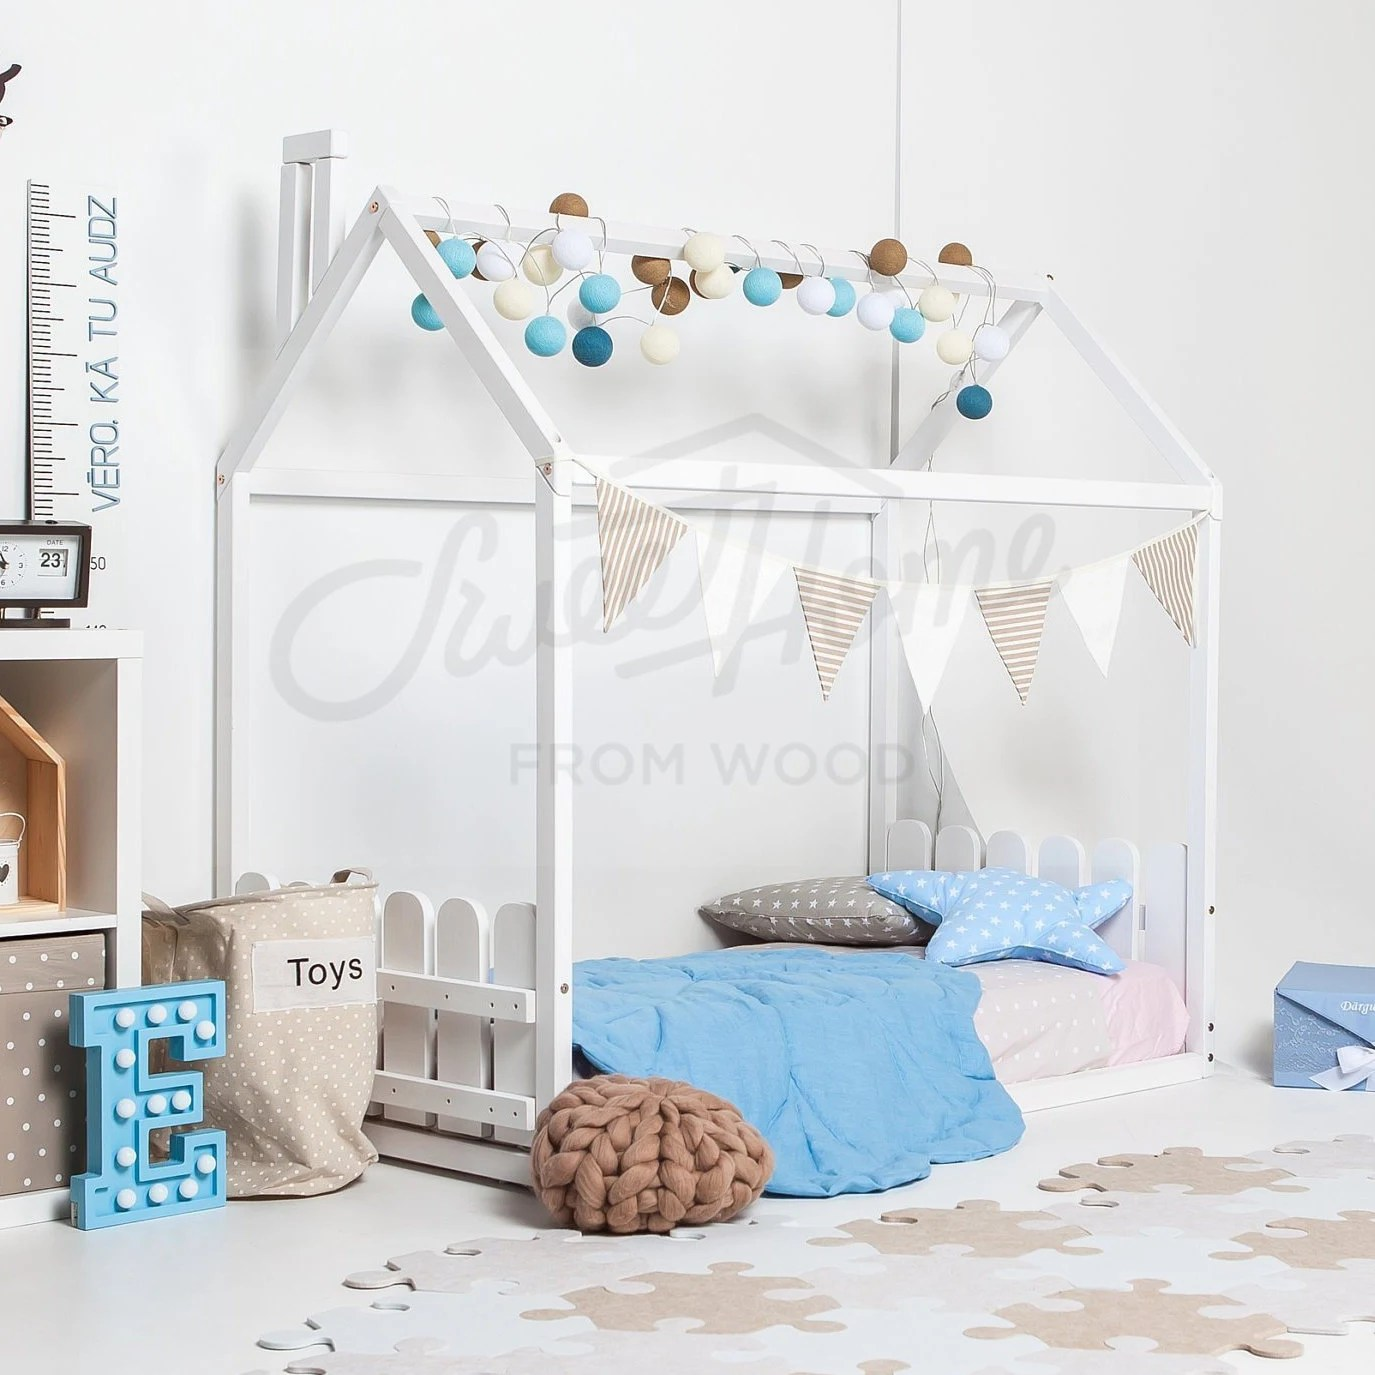 Tipi Bett 120x200 Childrens Bed Baby Bed Tent Beds Kids House Bed Children Bed Twin House Bed Kinderbett Bunk Bed Kids Teepee Twin Bed Frame Montessori Bett